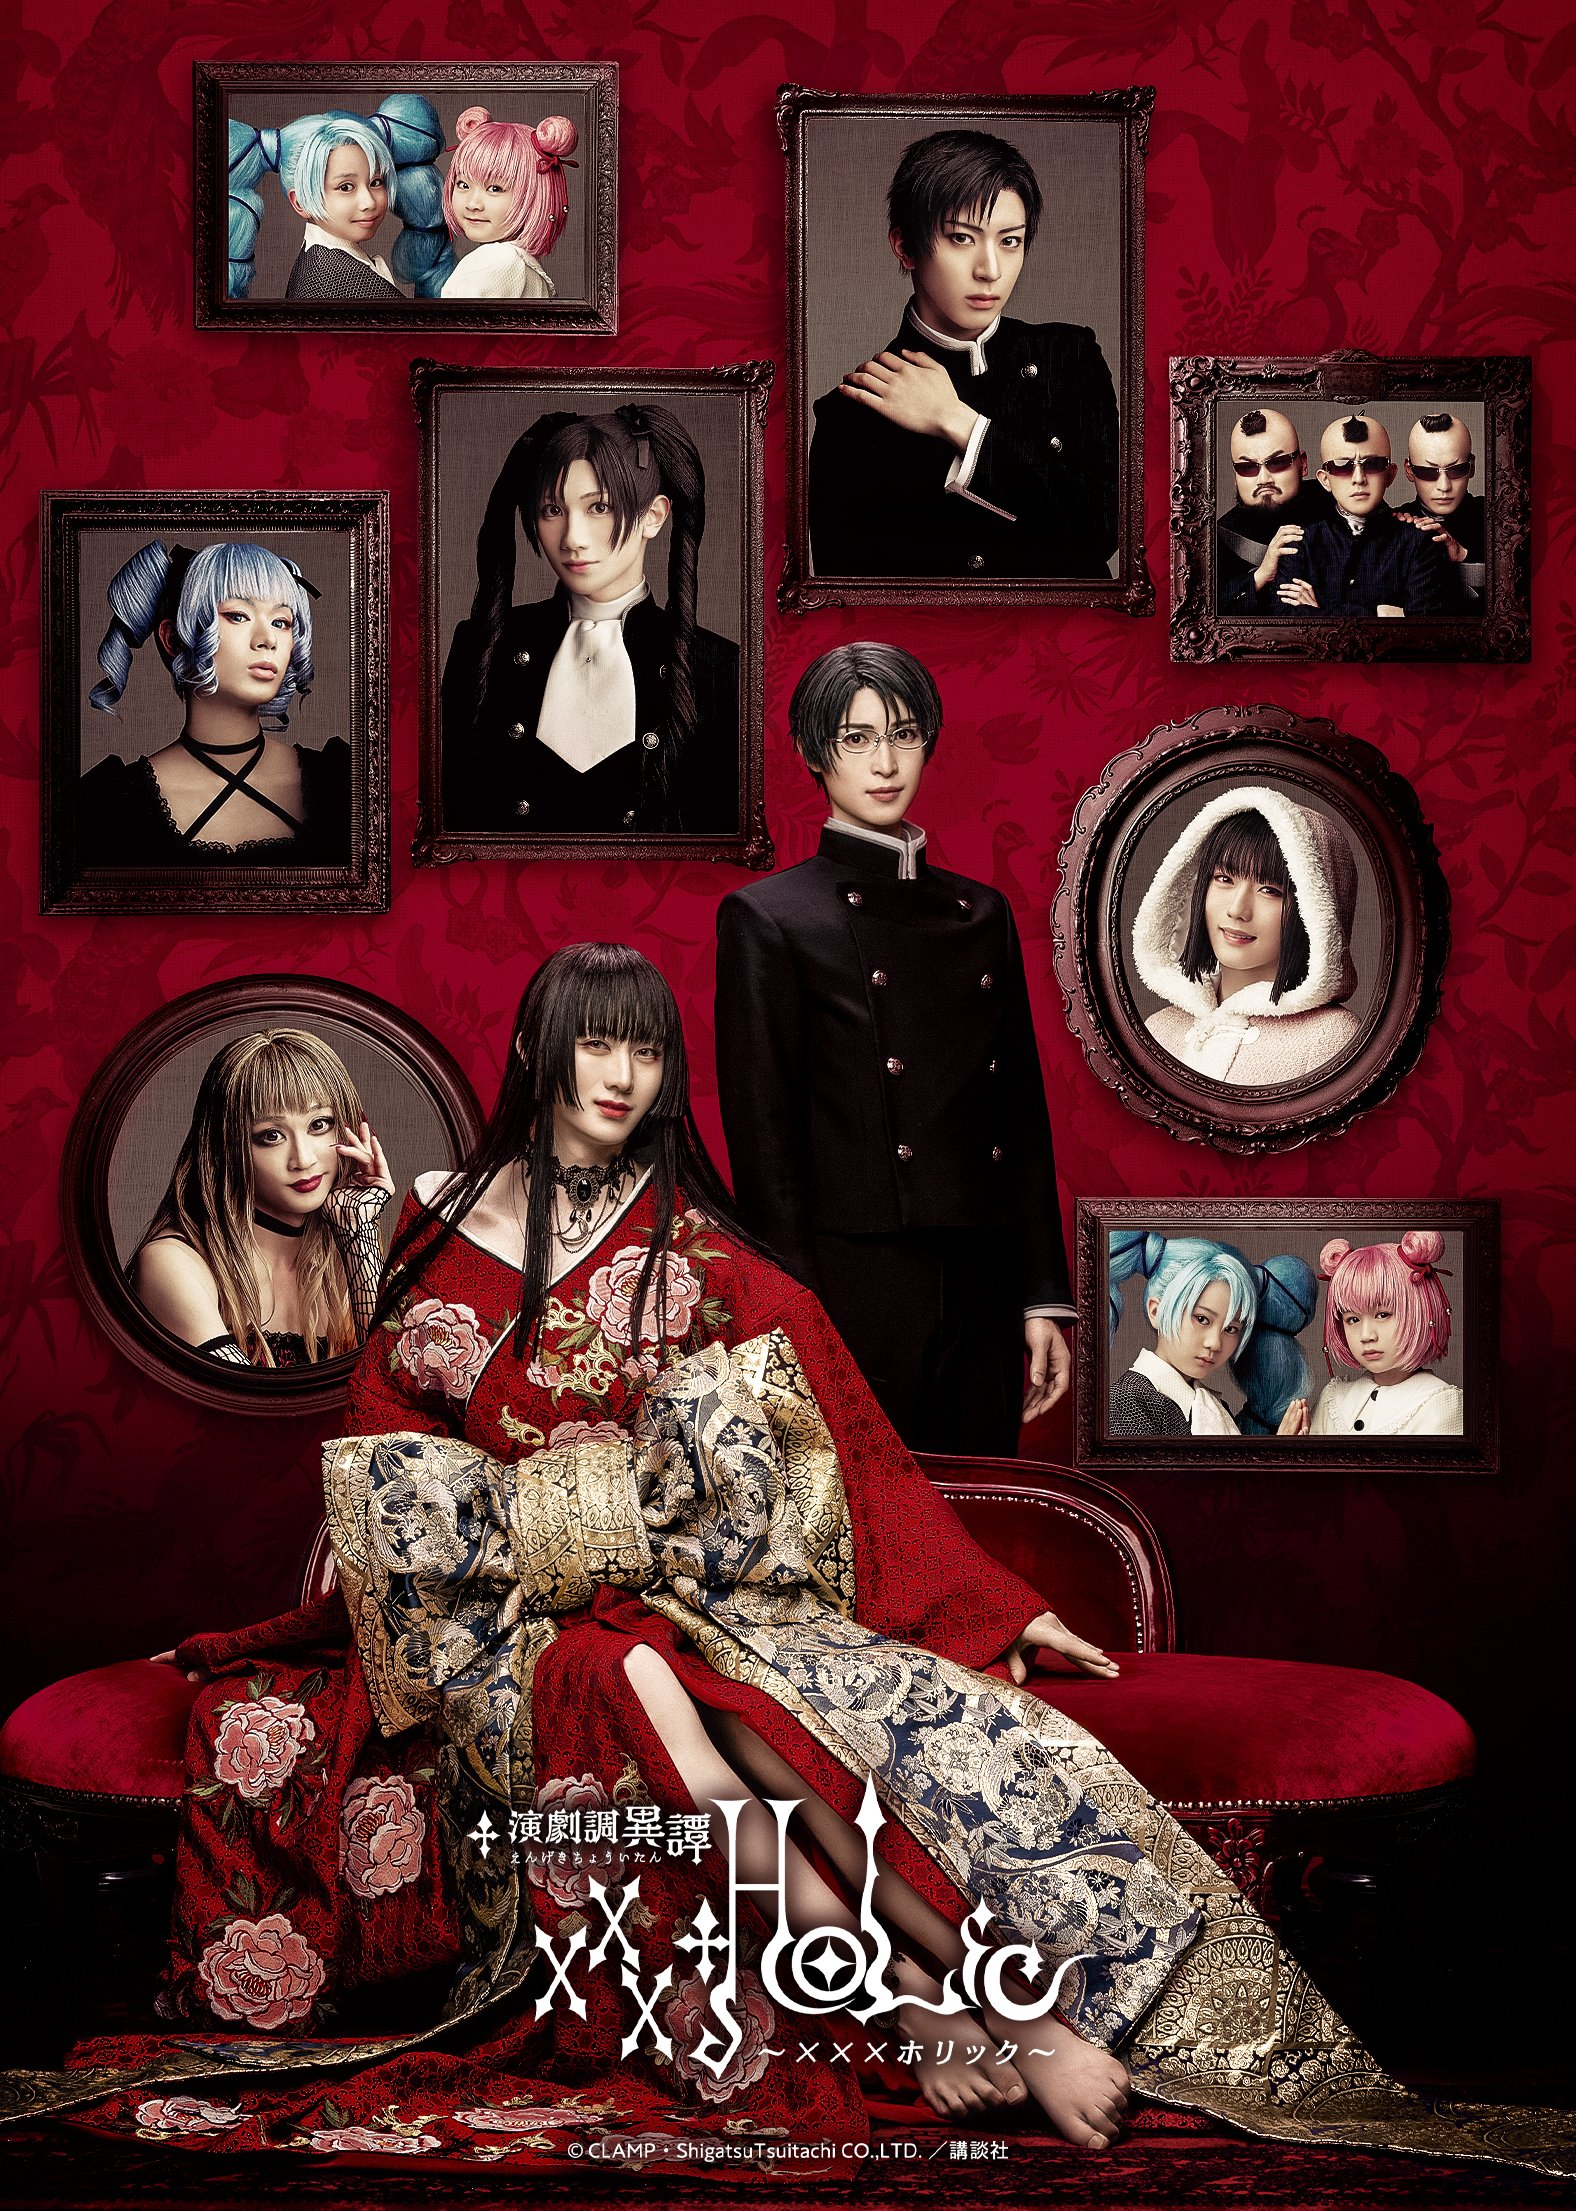 Featured image for XXXHOLiC musical theatre: new main visual, all male cast announced